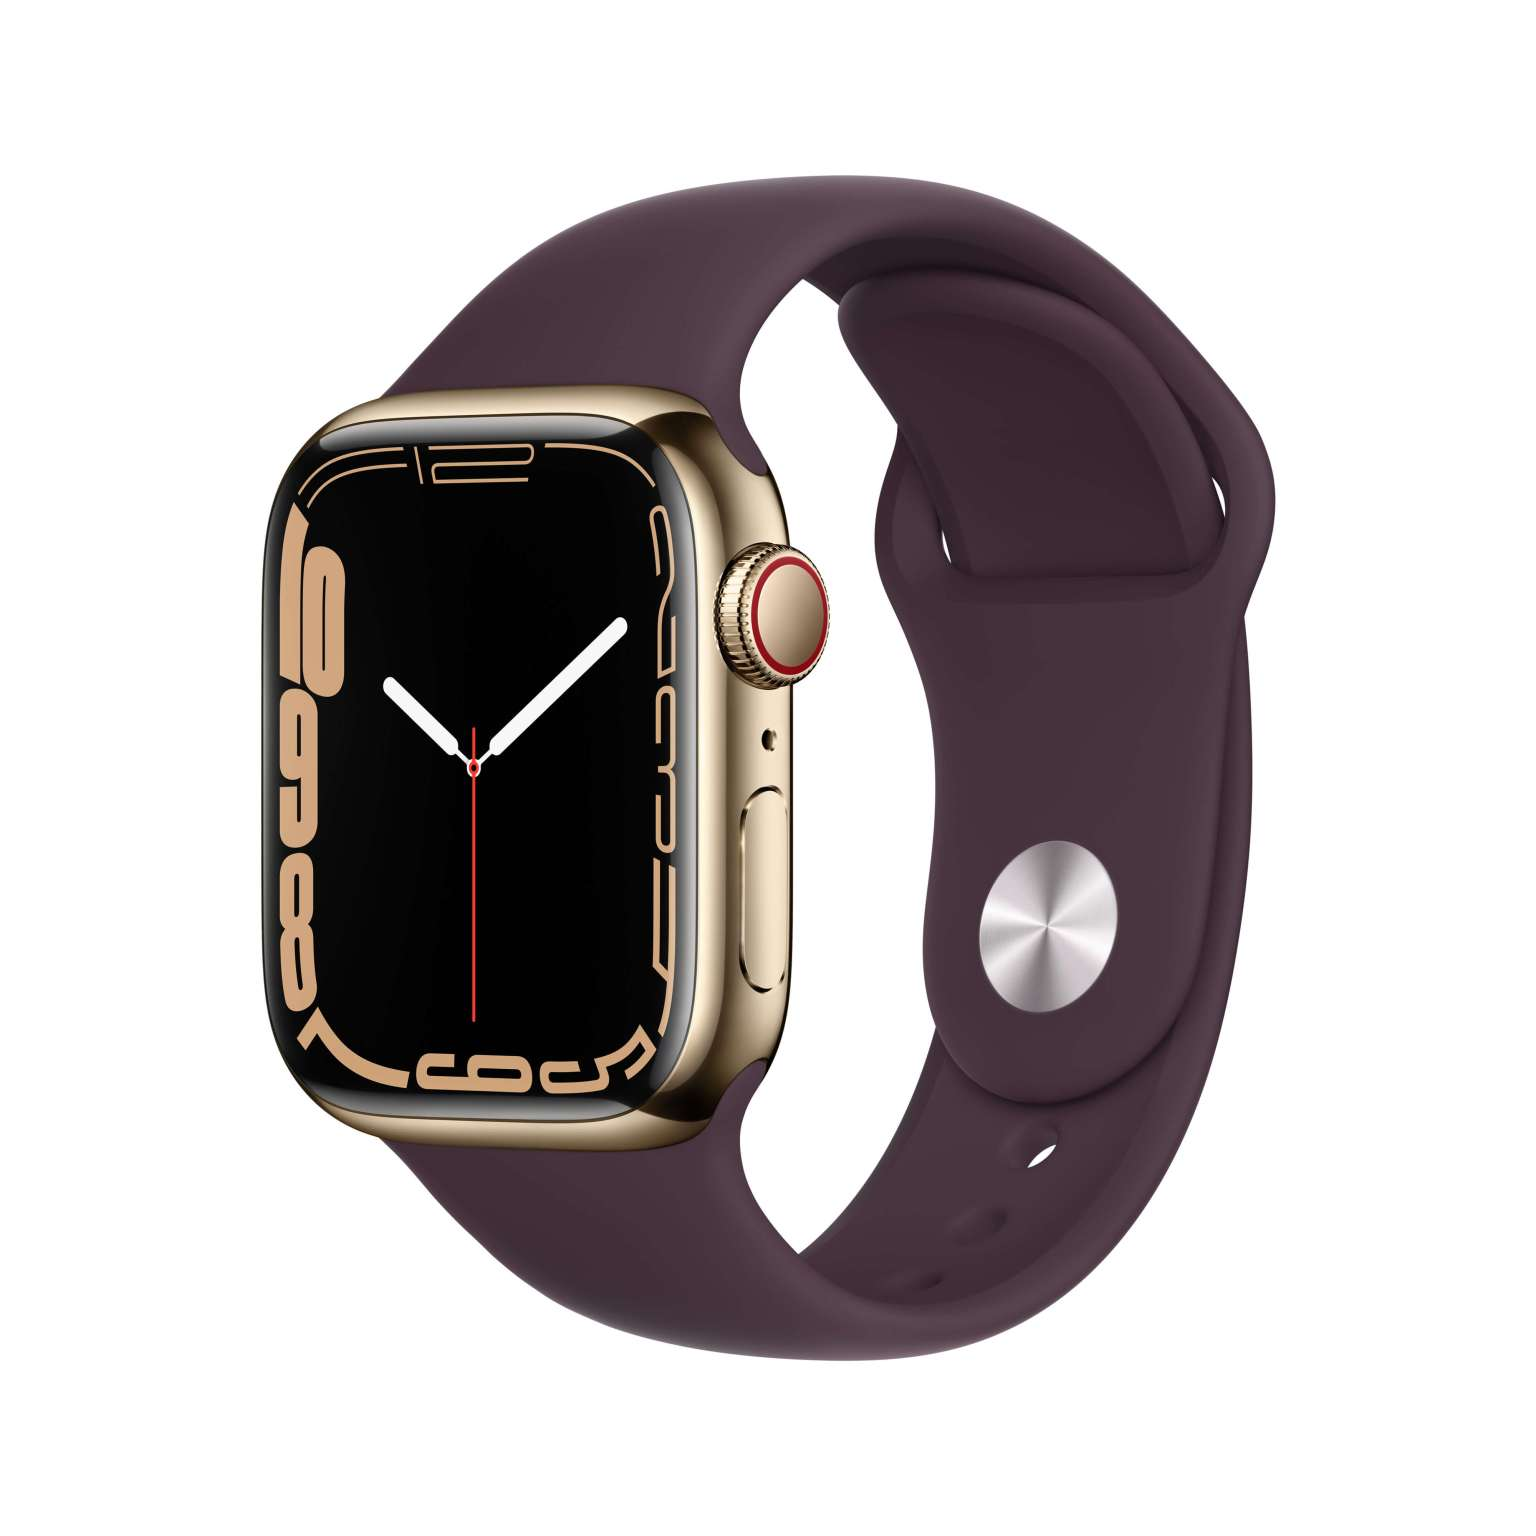 Apple_Watch_Series_7_Cell_41mm_Gold_Stainless_Steel_Dark_Cherry_Sport_Band_PDP_Image_Position-1__VN-1536x1536.jpg